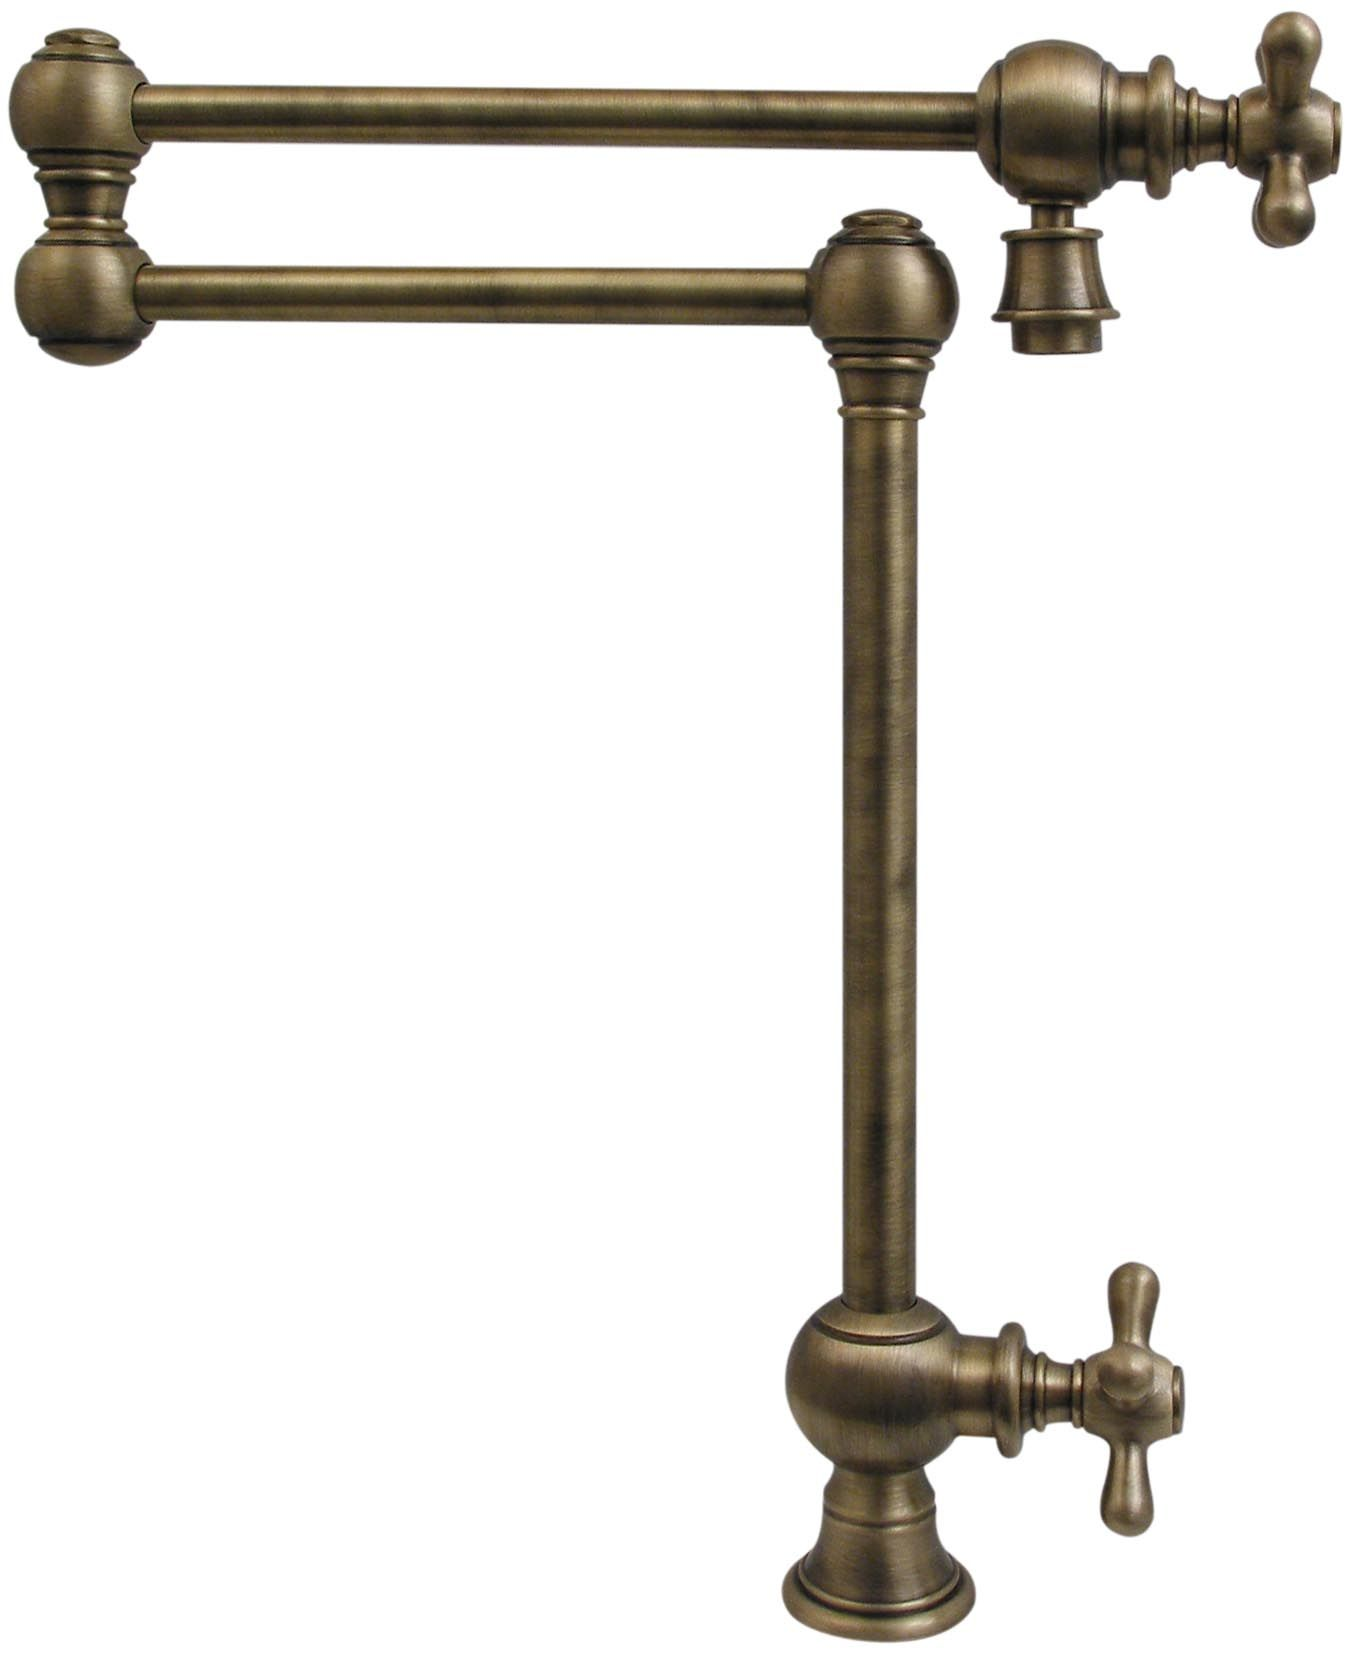 Patented Traditional Deck Mount Vintage Iii Pot Filler Faucet Whkpfdcr3 9555 With Cross Handle Shown In Anti Pot Filler Pot Filler Faucet Antique Brass Faucet